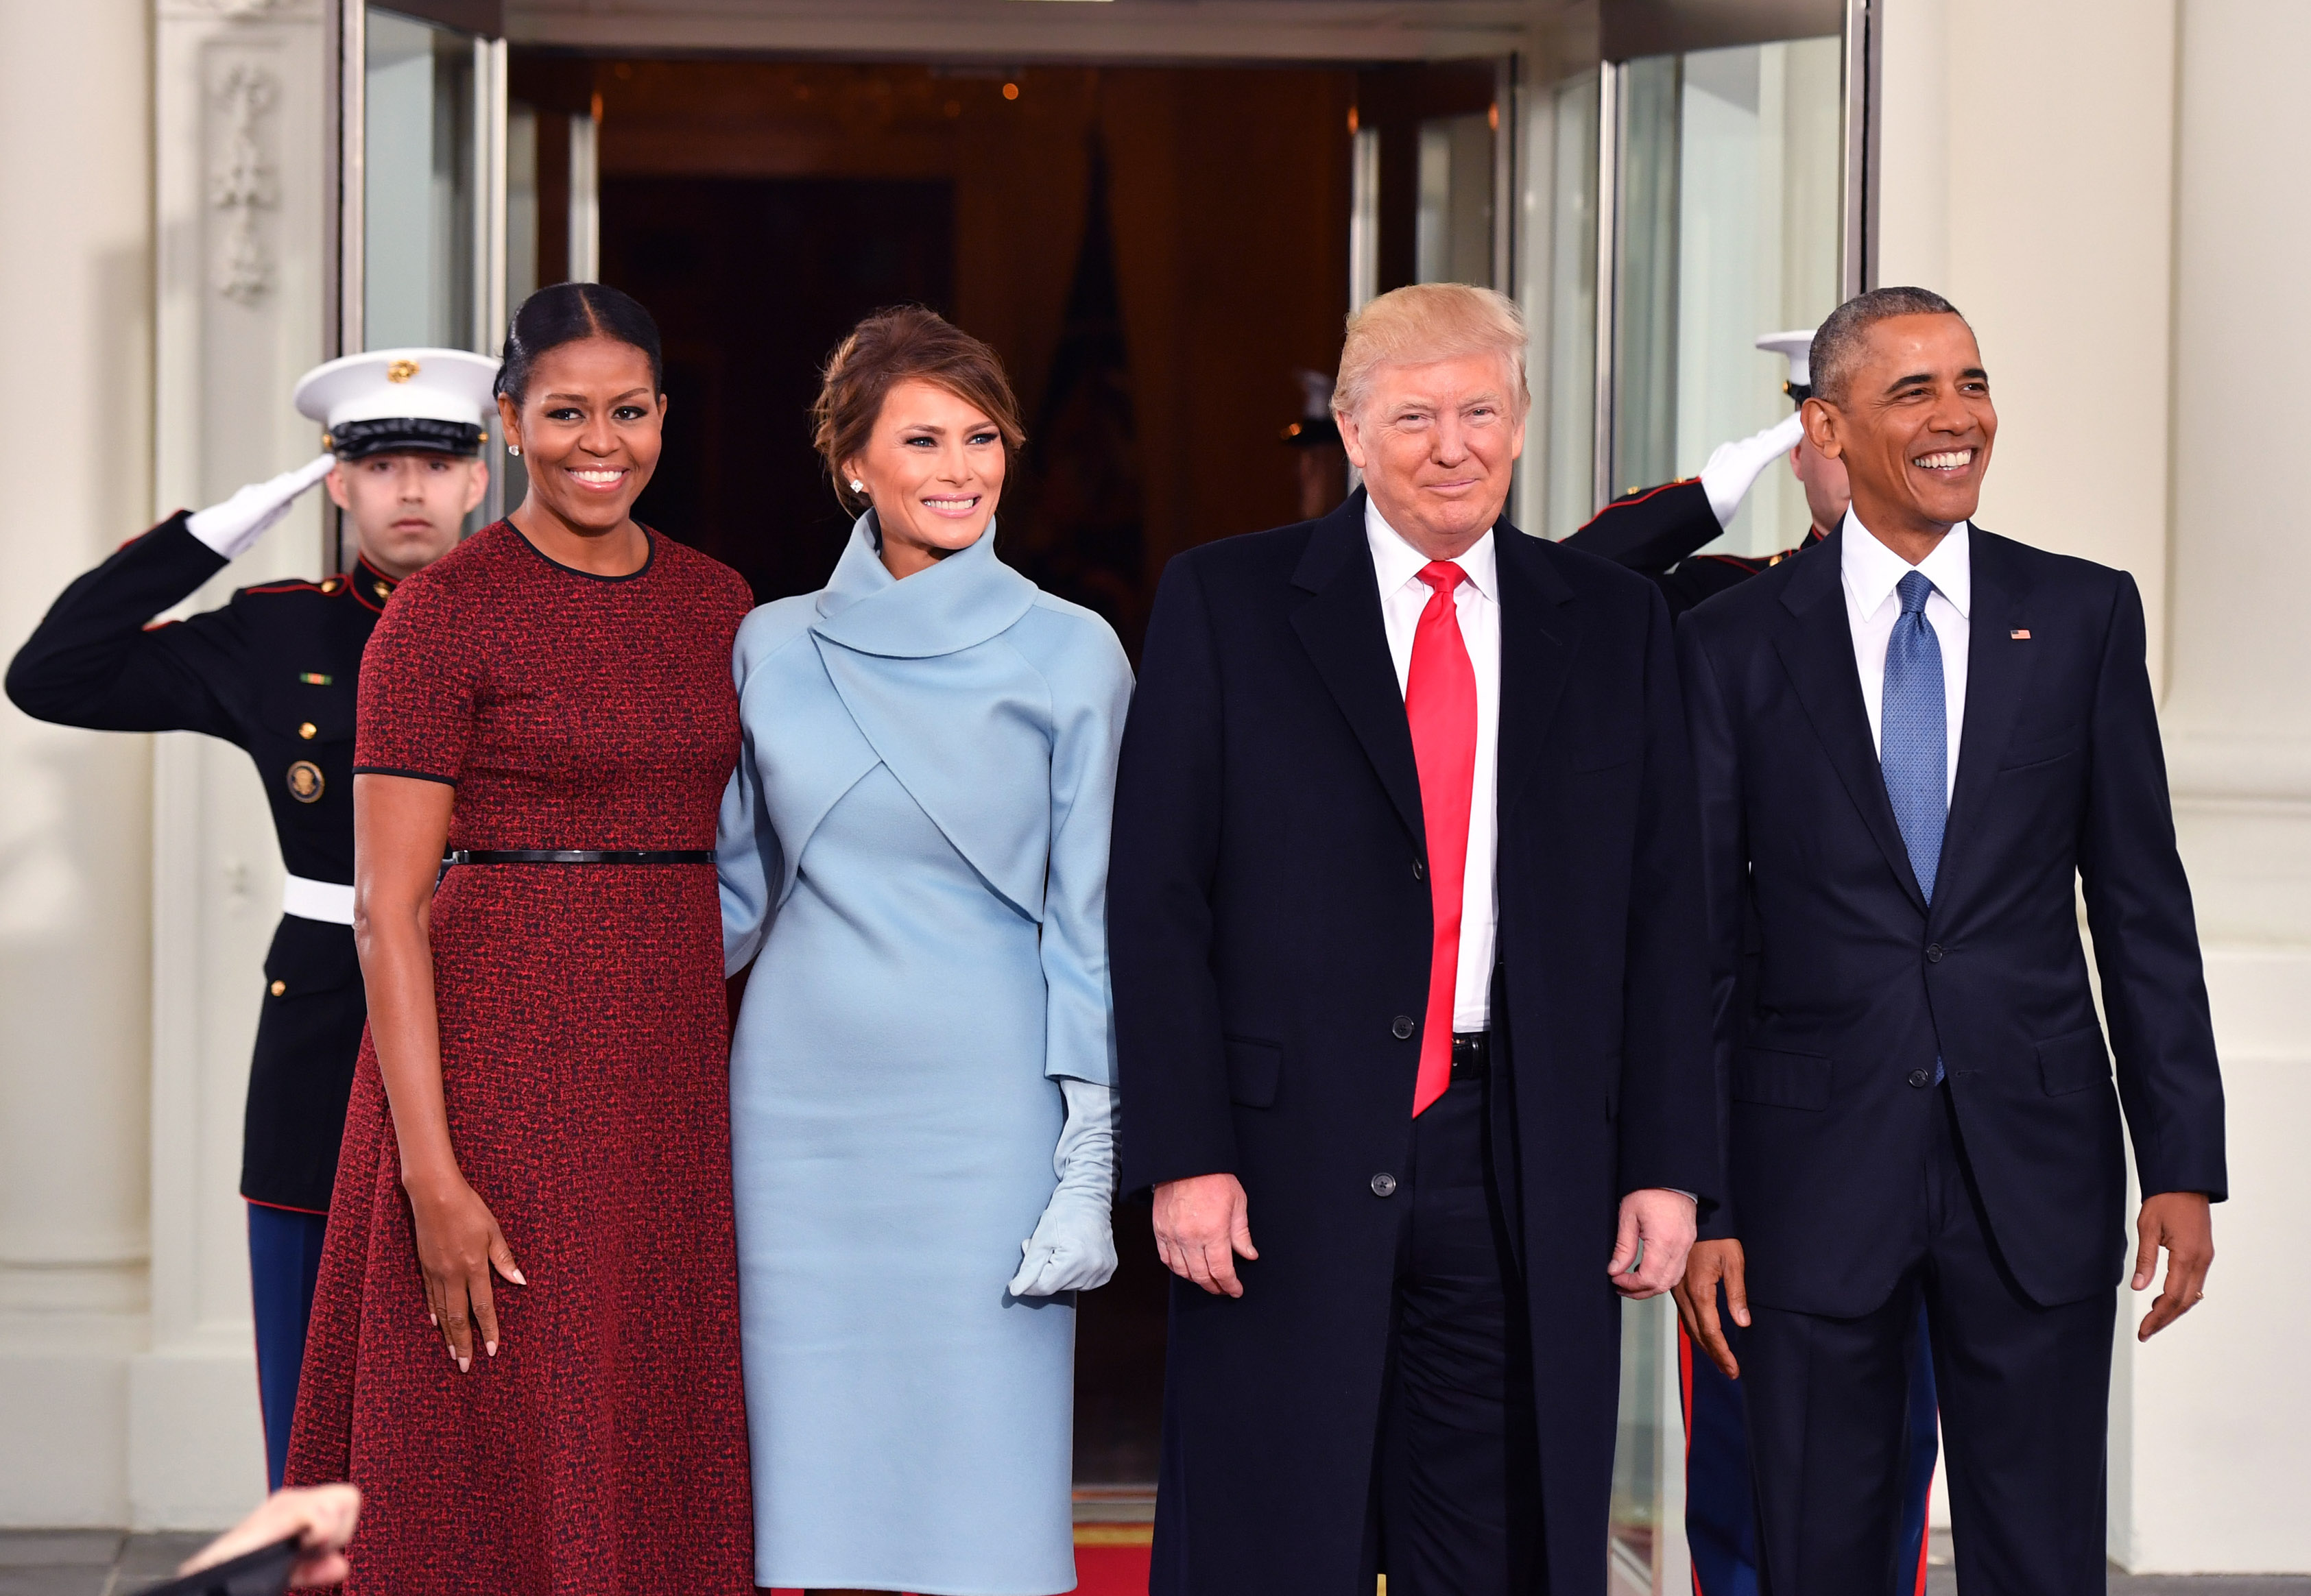 President Barack Obama (R) and Michelle Obama (L) pose with President-elect Donald Trump and wife Melania at the White House before the inauguration on January 20, 2017 in Washington, D.C. Trump becomes the 45th President of the United States. (Photo by Kevin Dietsch-Pool/Getty Images)